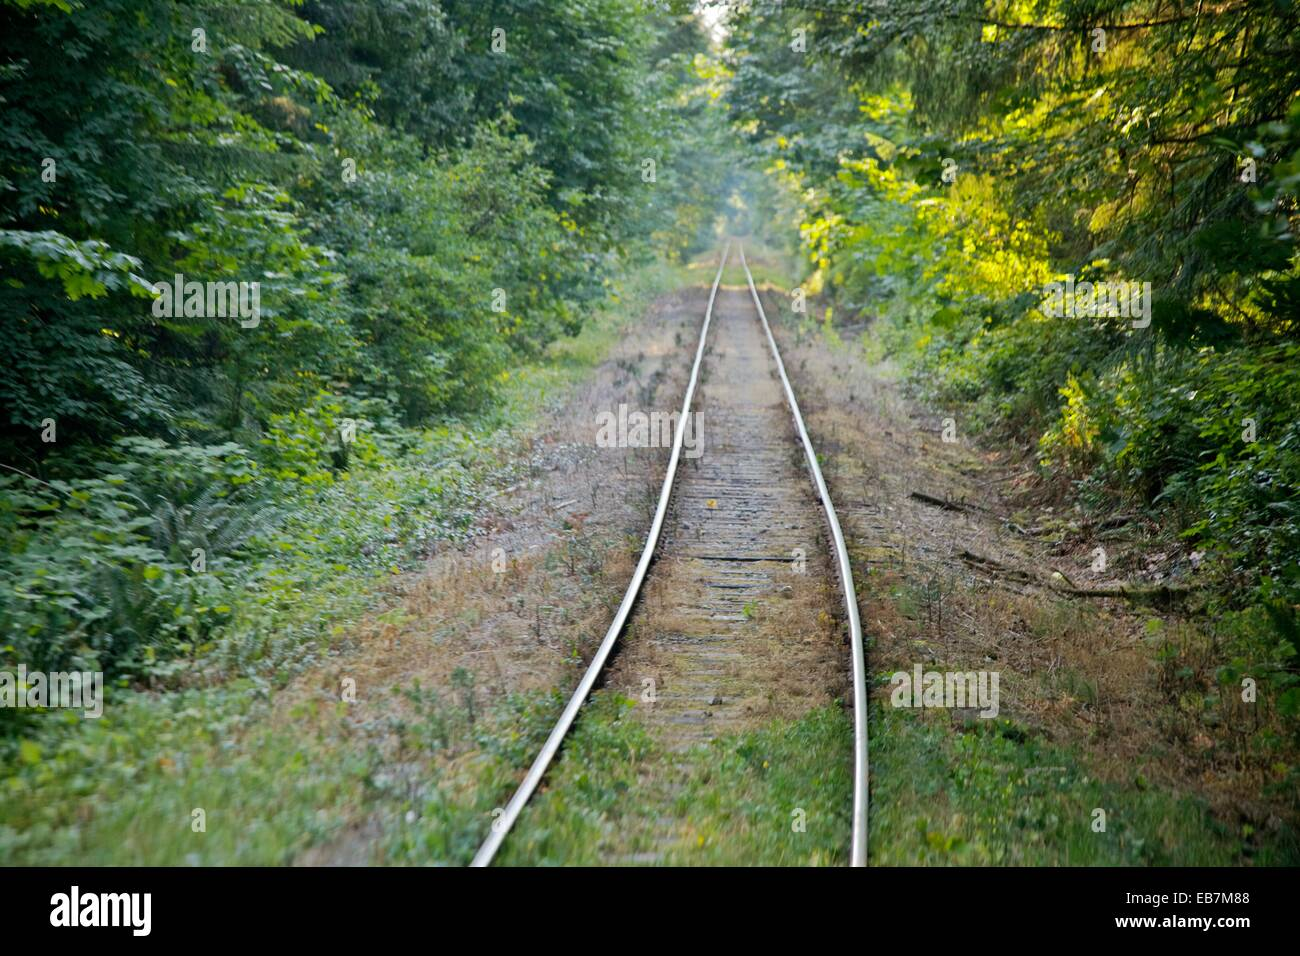 A rail line going through the forest on Vancouver Island - Stock Image